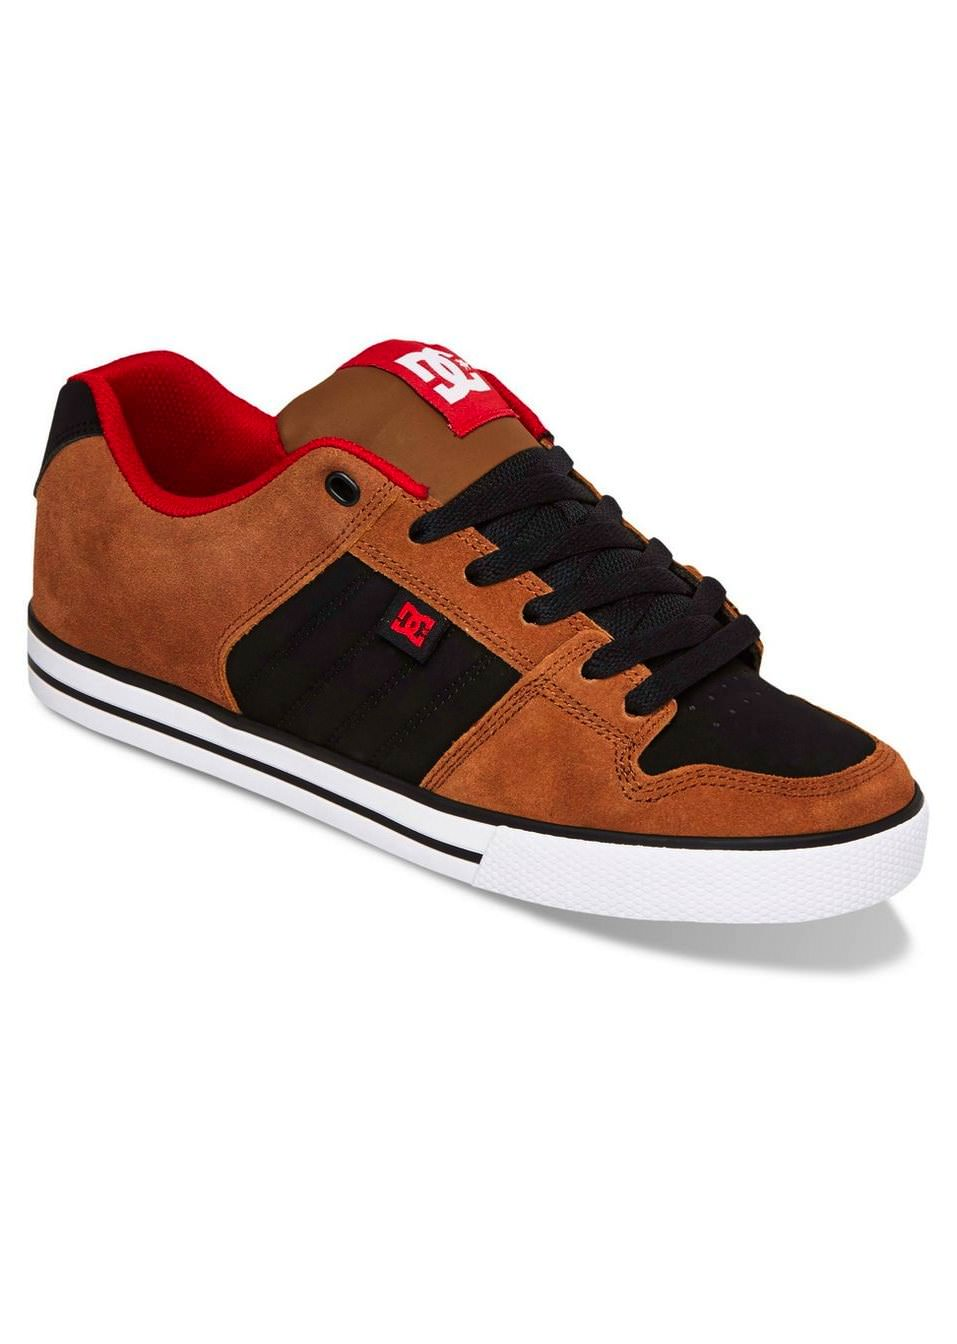 DC SHOES COURSE 1 - LM BOARD STORE